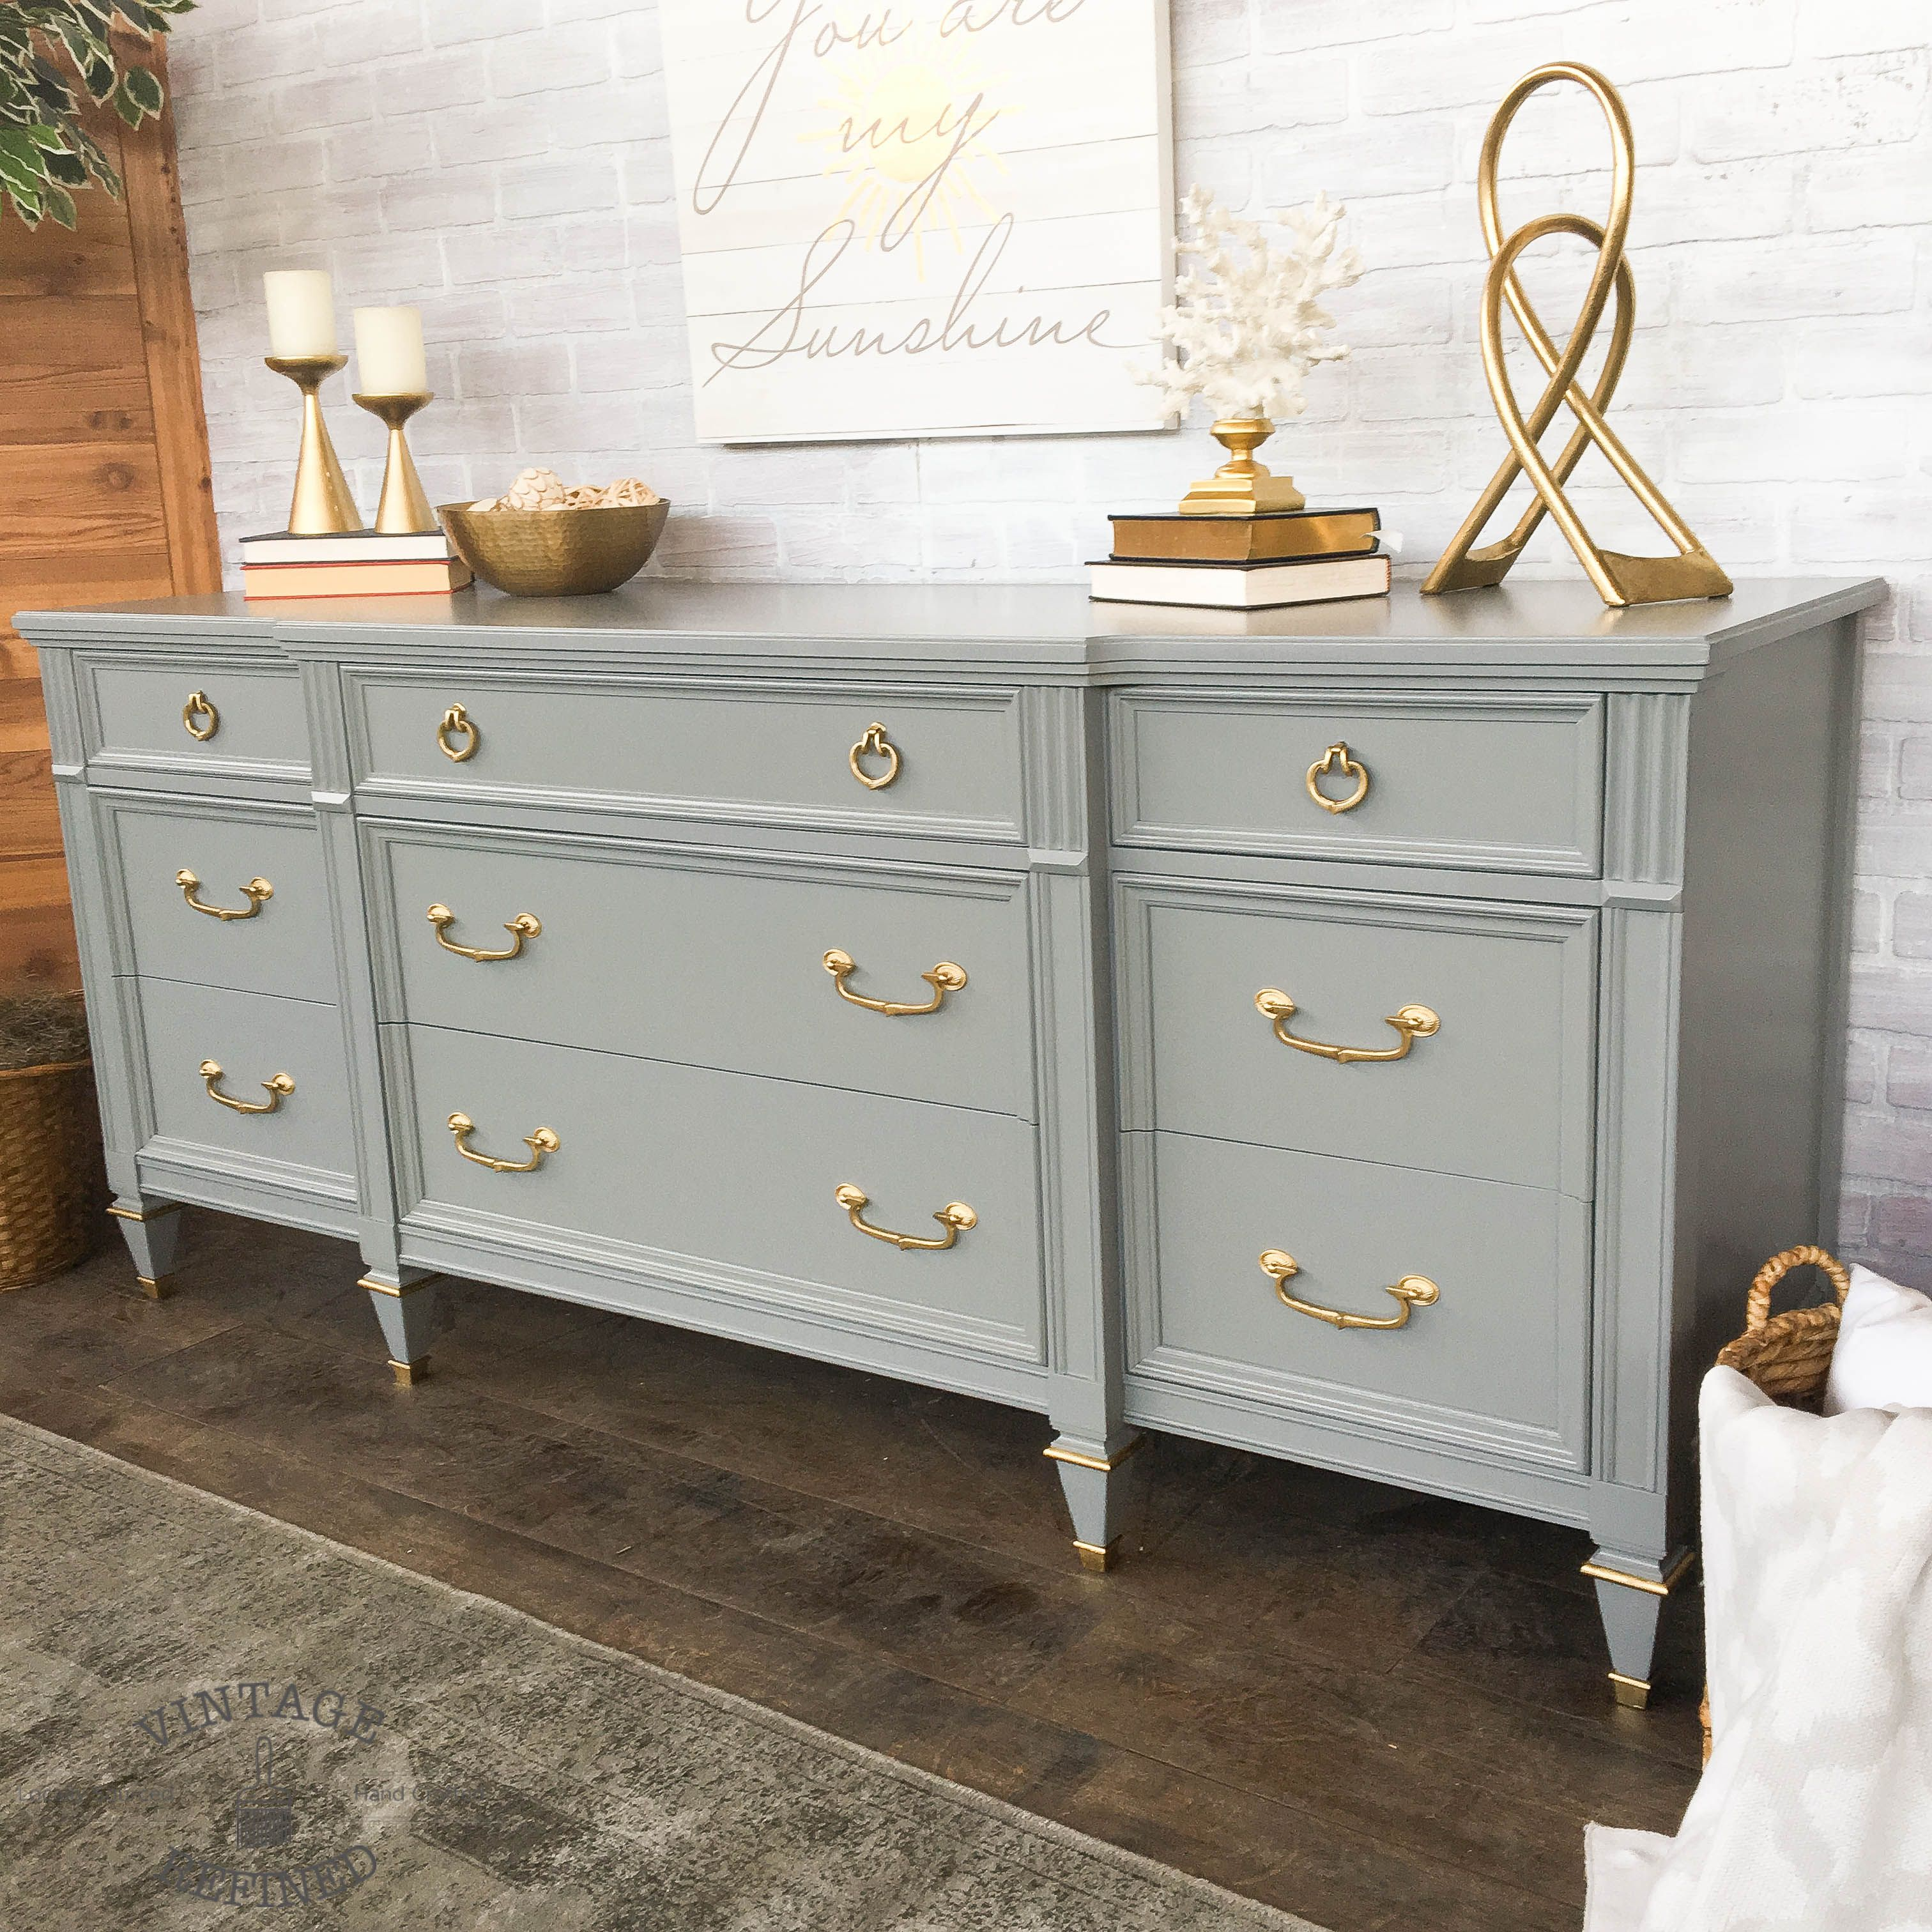 Grey Painted Dresser With Gold Hardware Would Make An Awesome